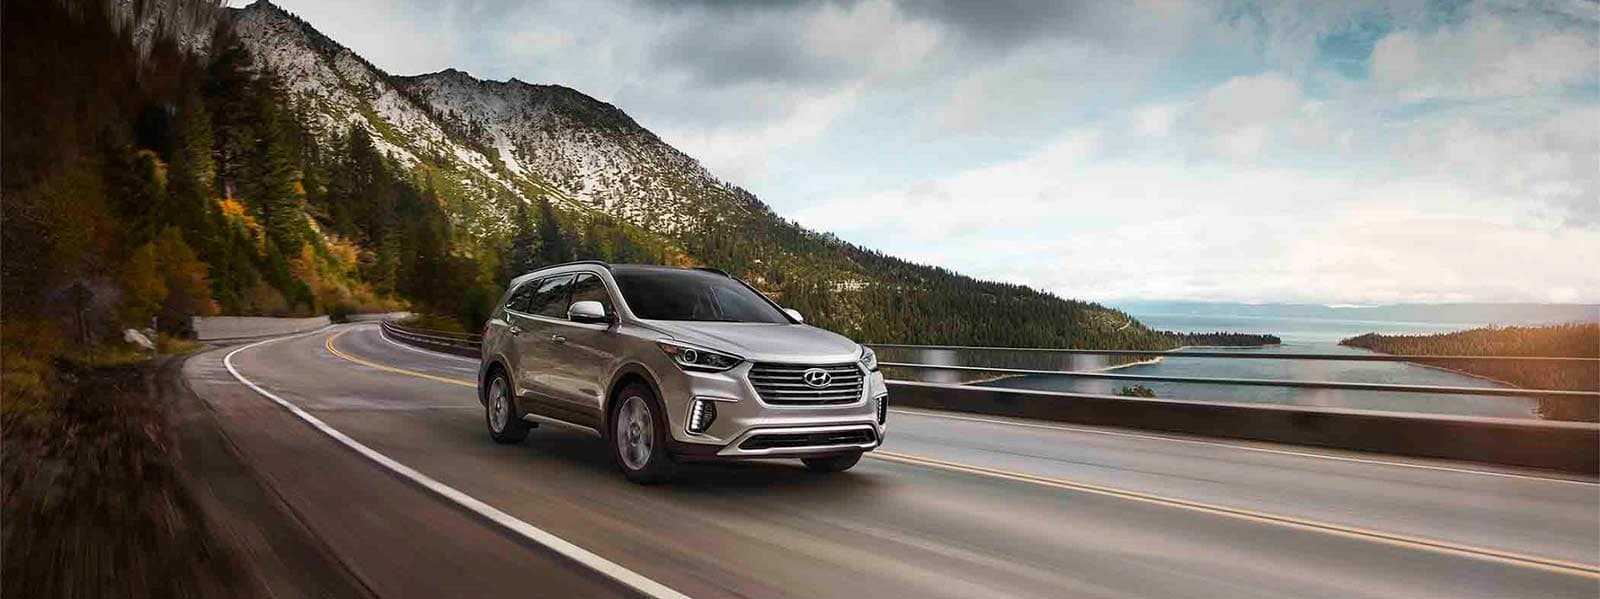 2017 SantaFe Limited Ultimate Tech Silver 0008 Mountains